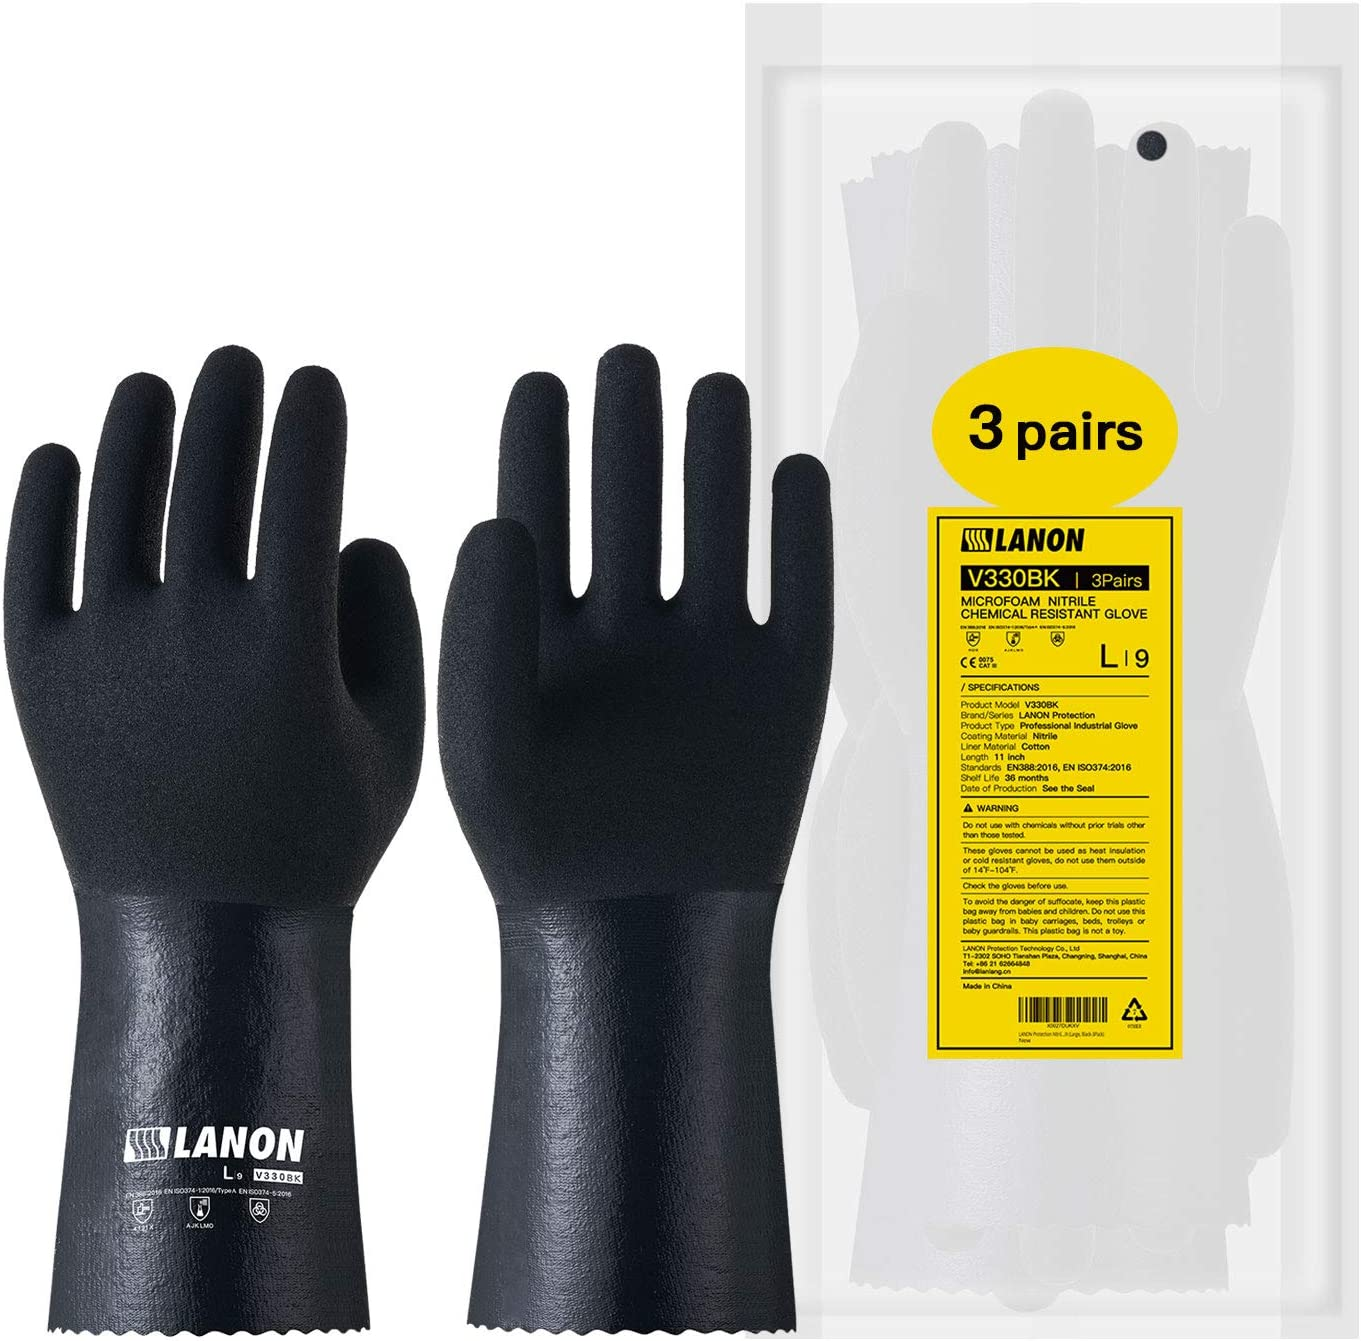 LANON Nitrile Chemical Resistant Gloves, Reusable Heavy Duty Safety Work Gloves with MicroFoam Textured Palm, Non-Slip, XX Large: Clothing